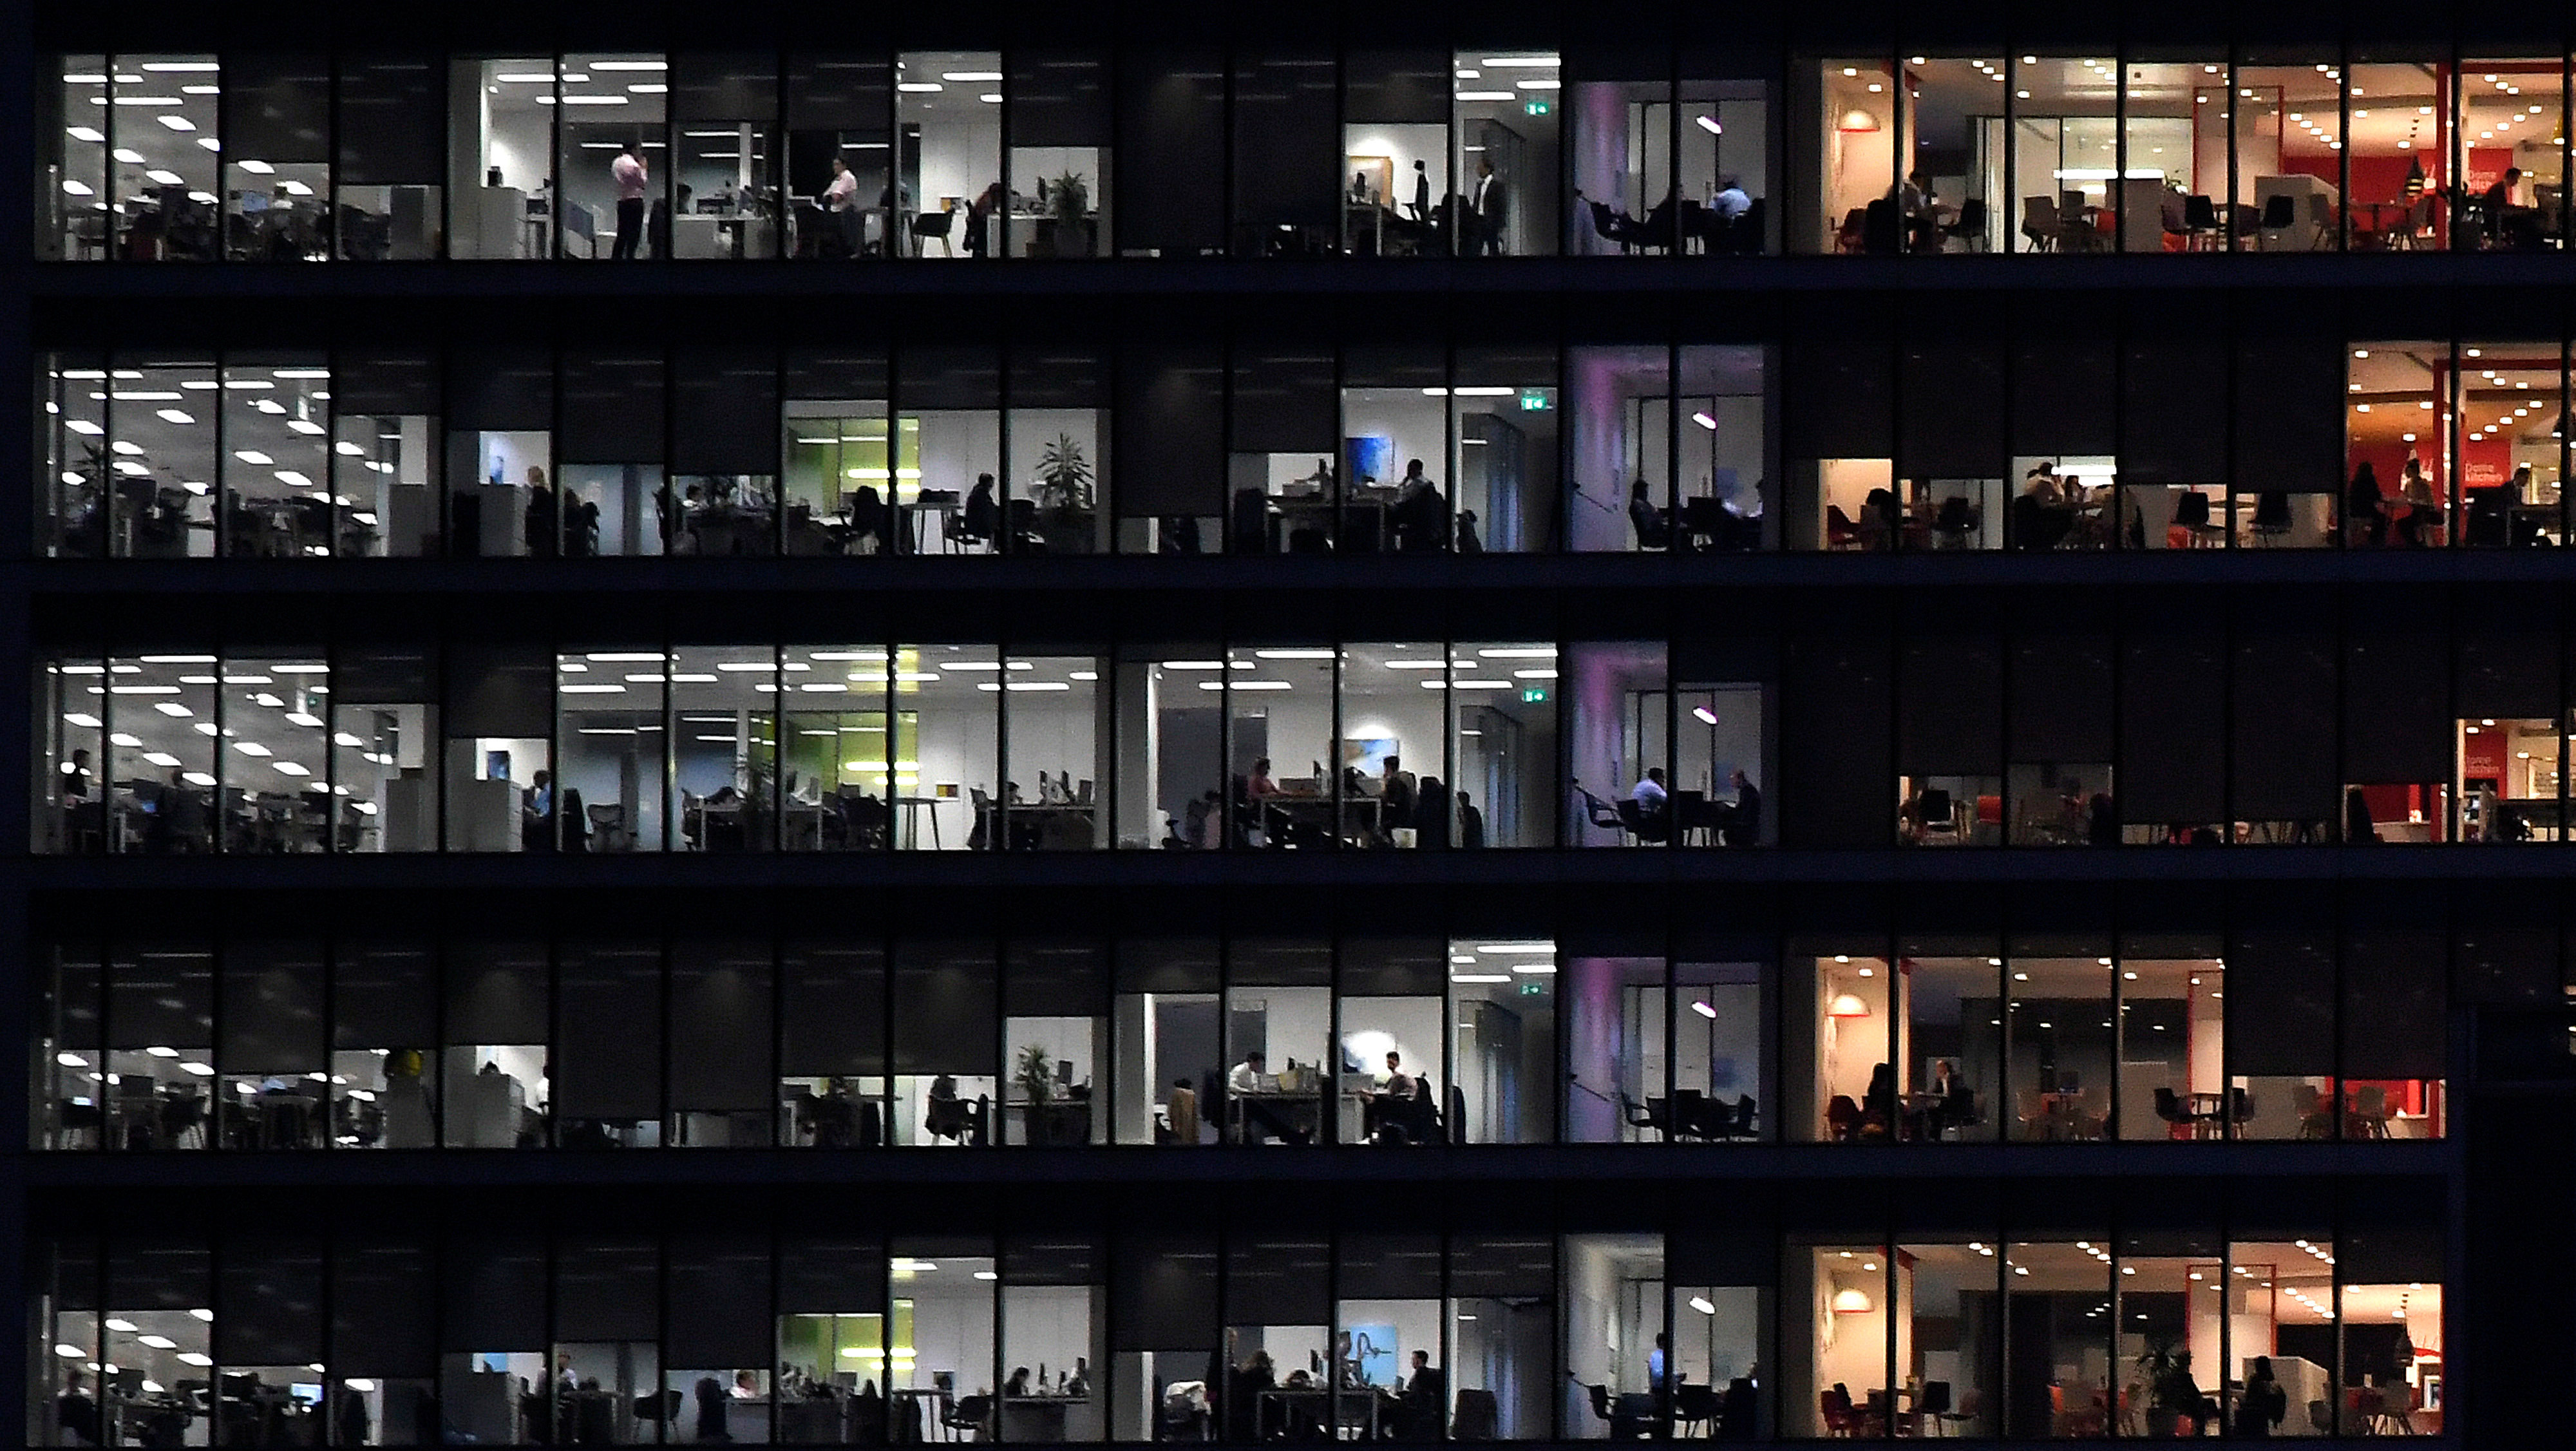 Workers are seen in an office tower in the Canary Wharf financial district at dusk in London, Britain, November 17, 2017. Picture taken November 17, 2017.